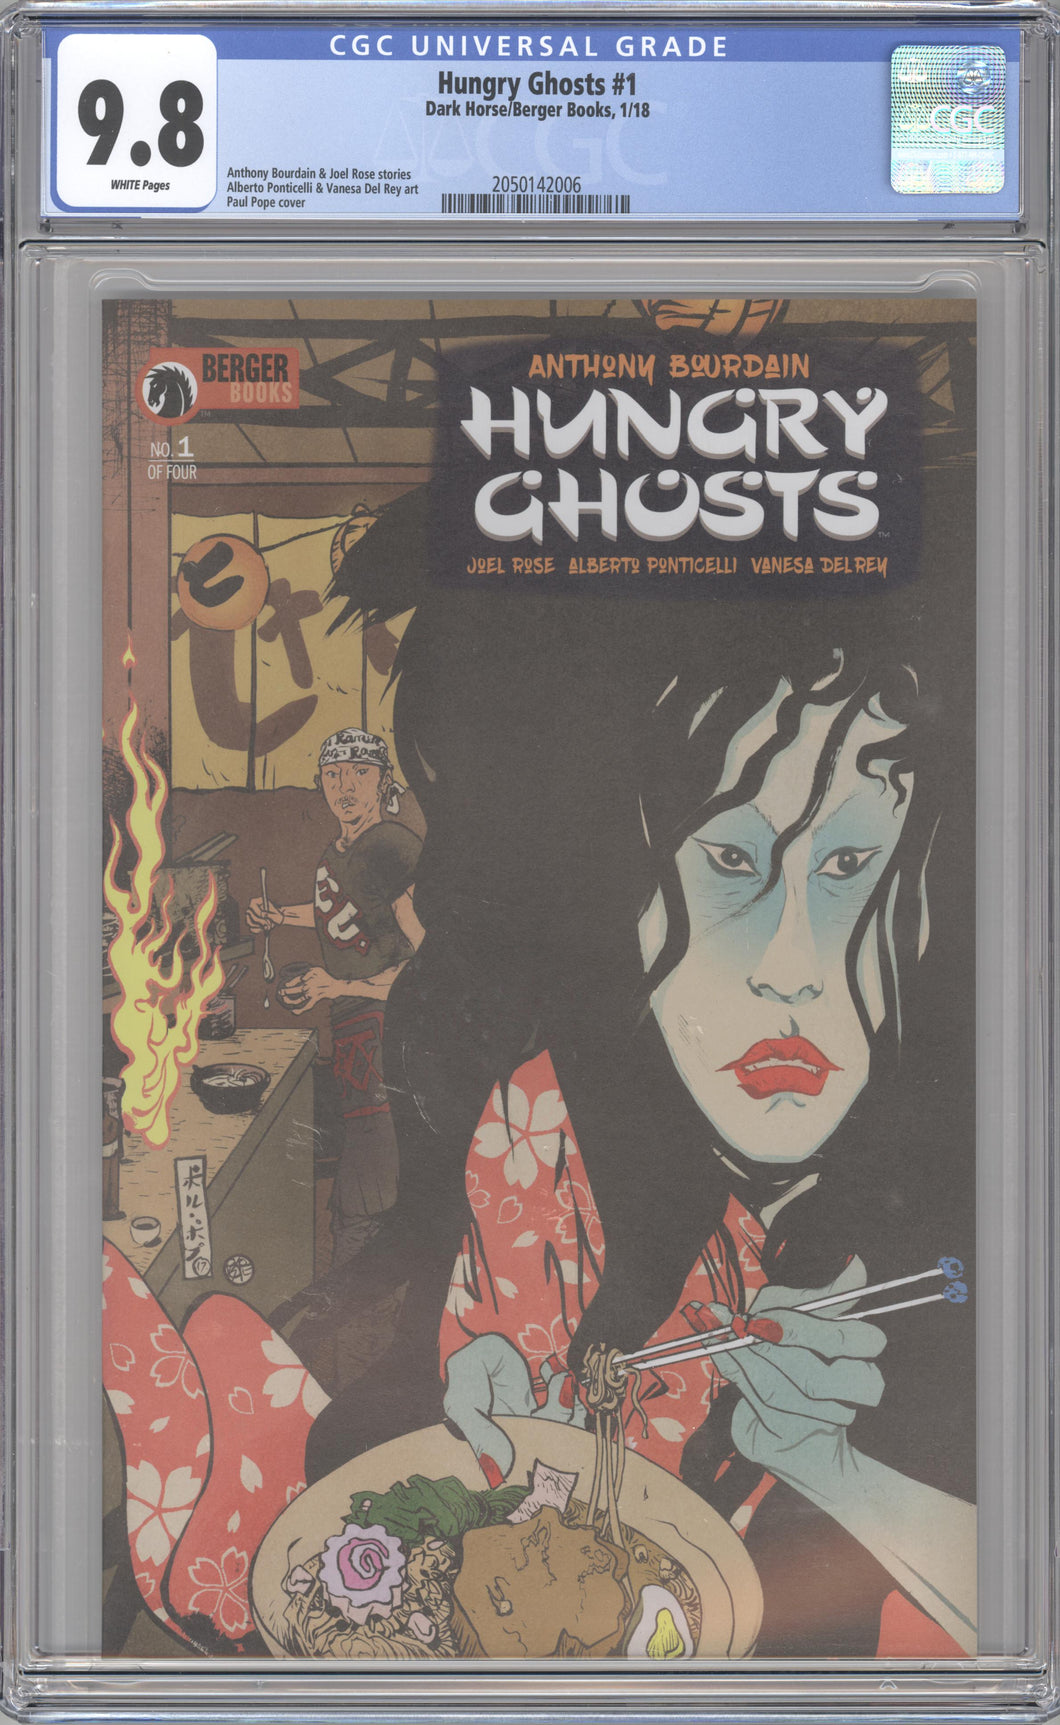 HUNGRY GHOSTS #1 (2018 Dark Horse/Berger) CGC GRADED 9.8 NM/M Anthony Bourdain